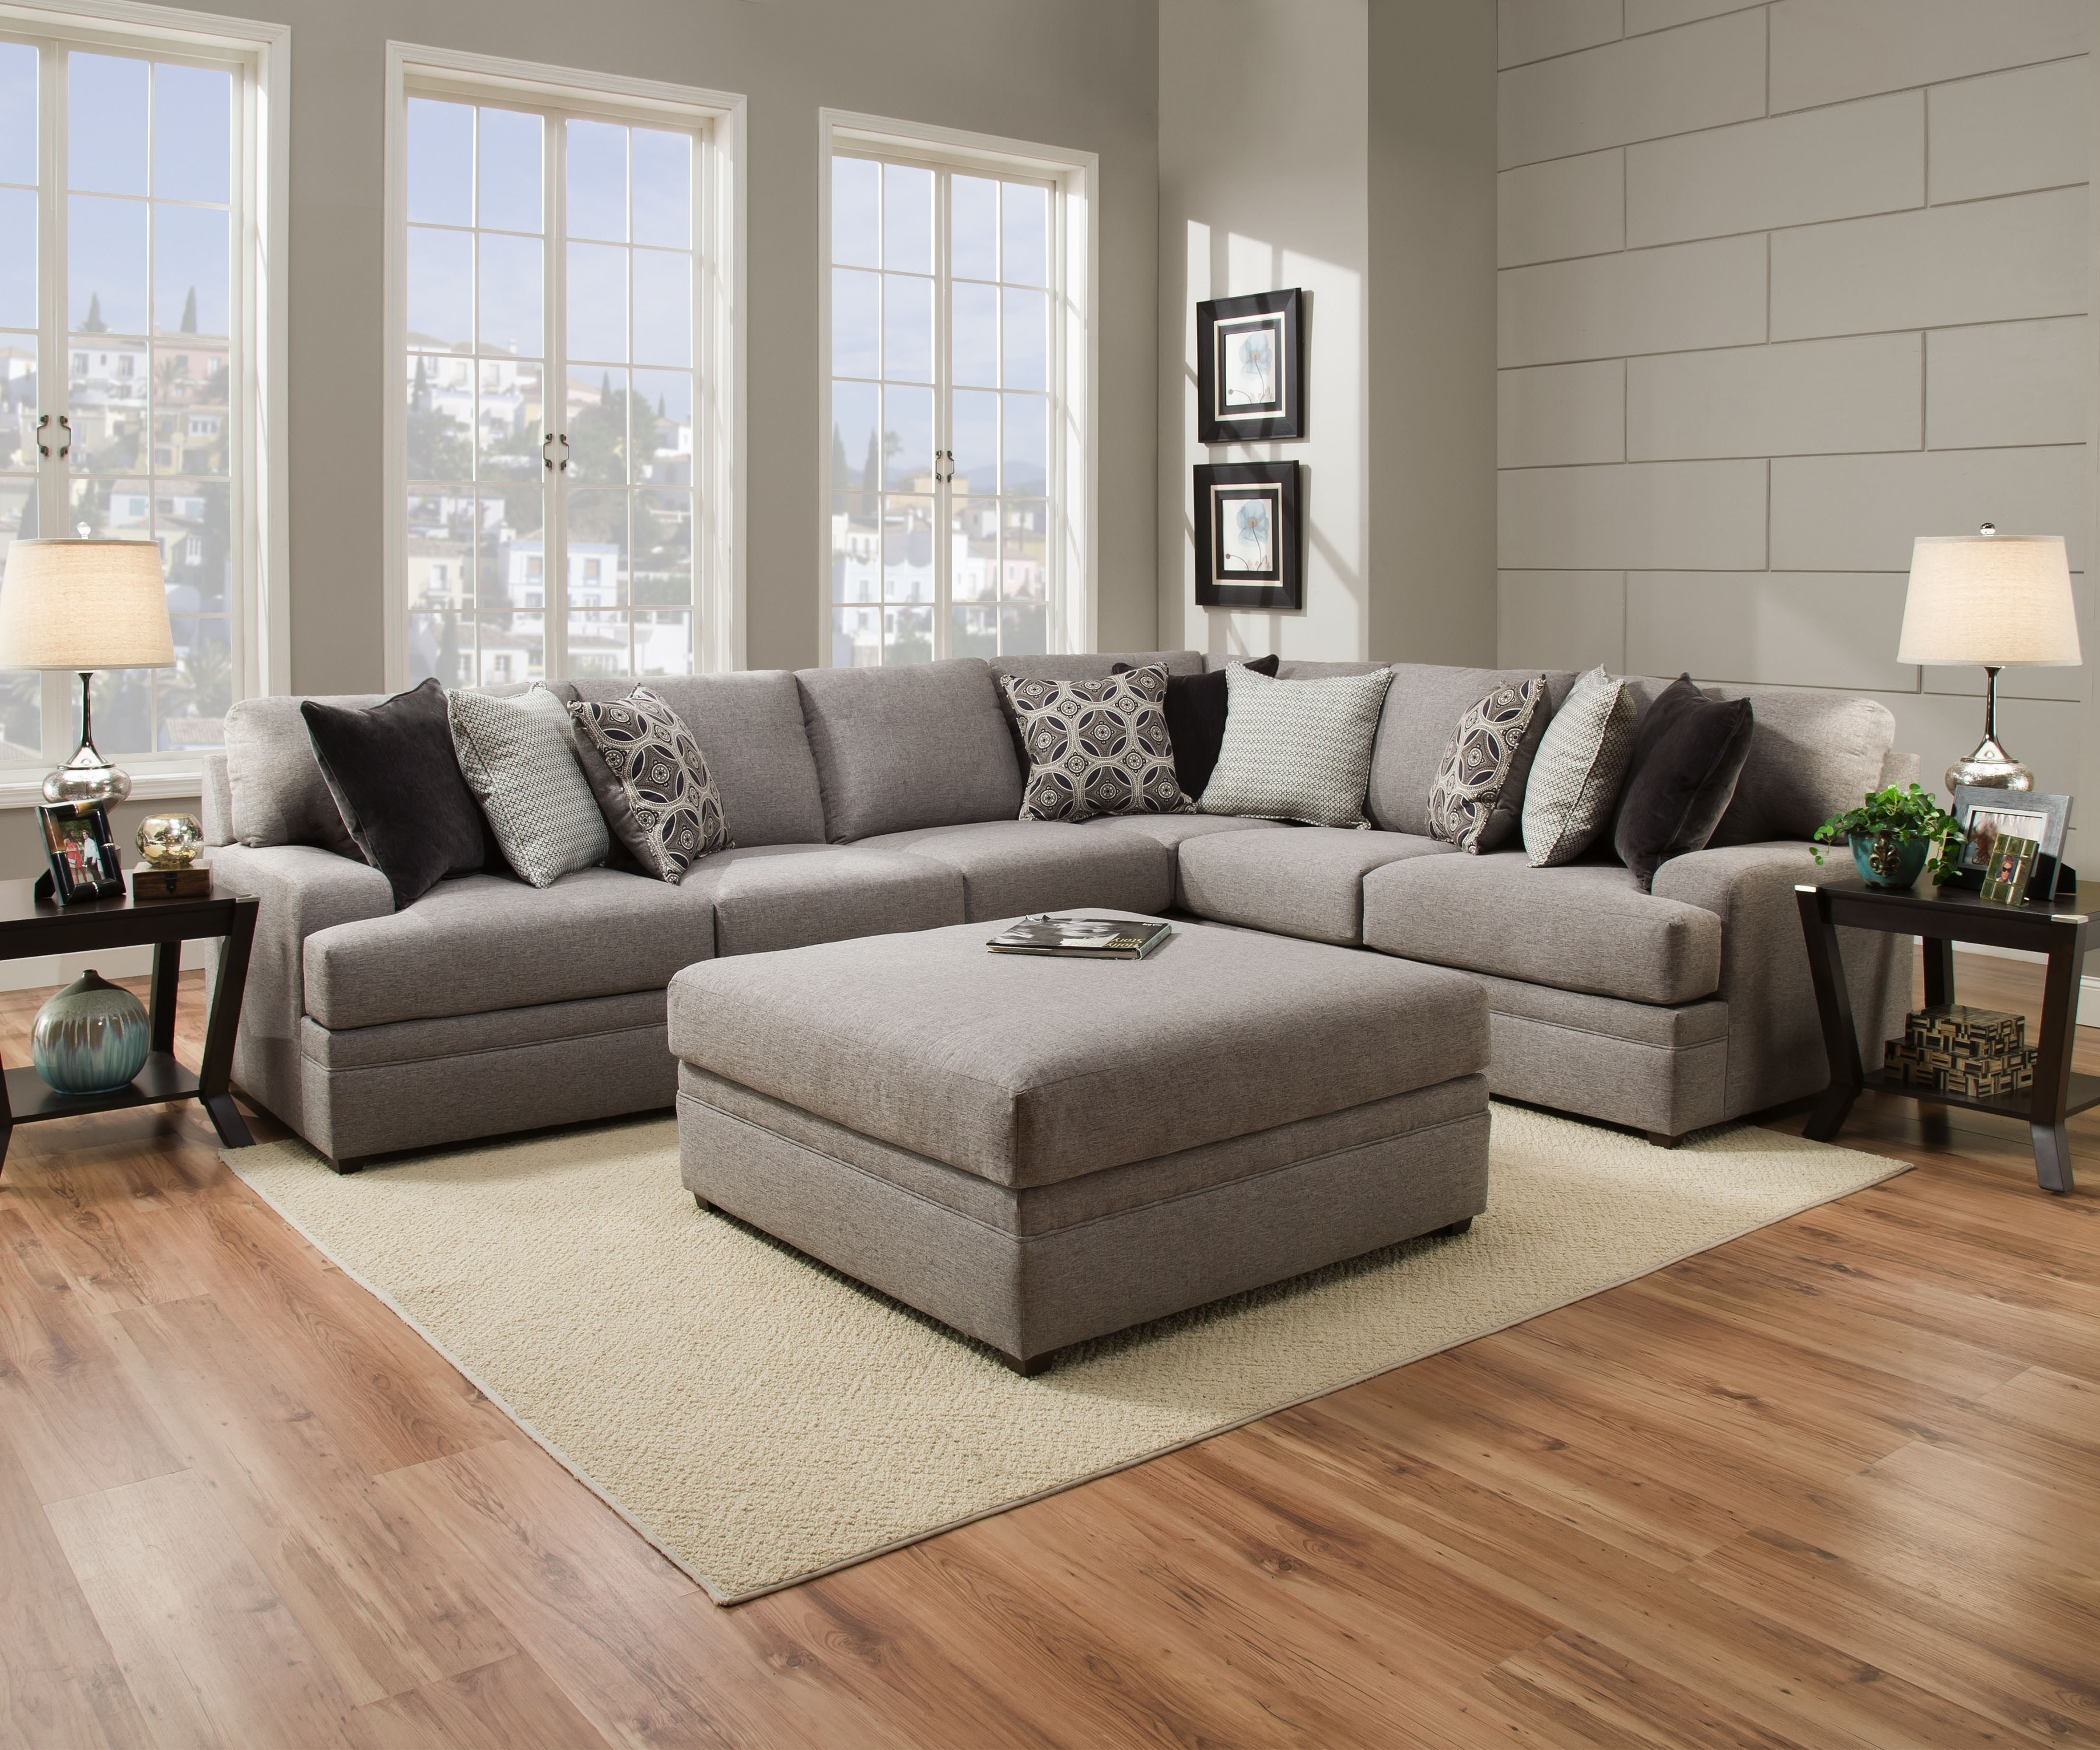 Sears Burton Sectional Sofa • Sectional Sofa with Sectional Sofas at Sears (Image 7 of 15)